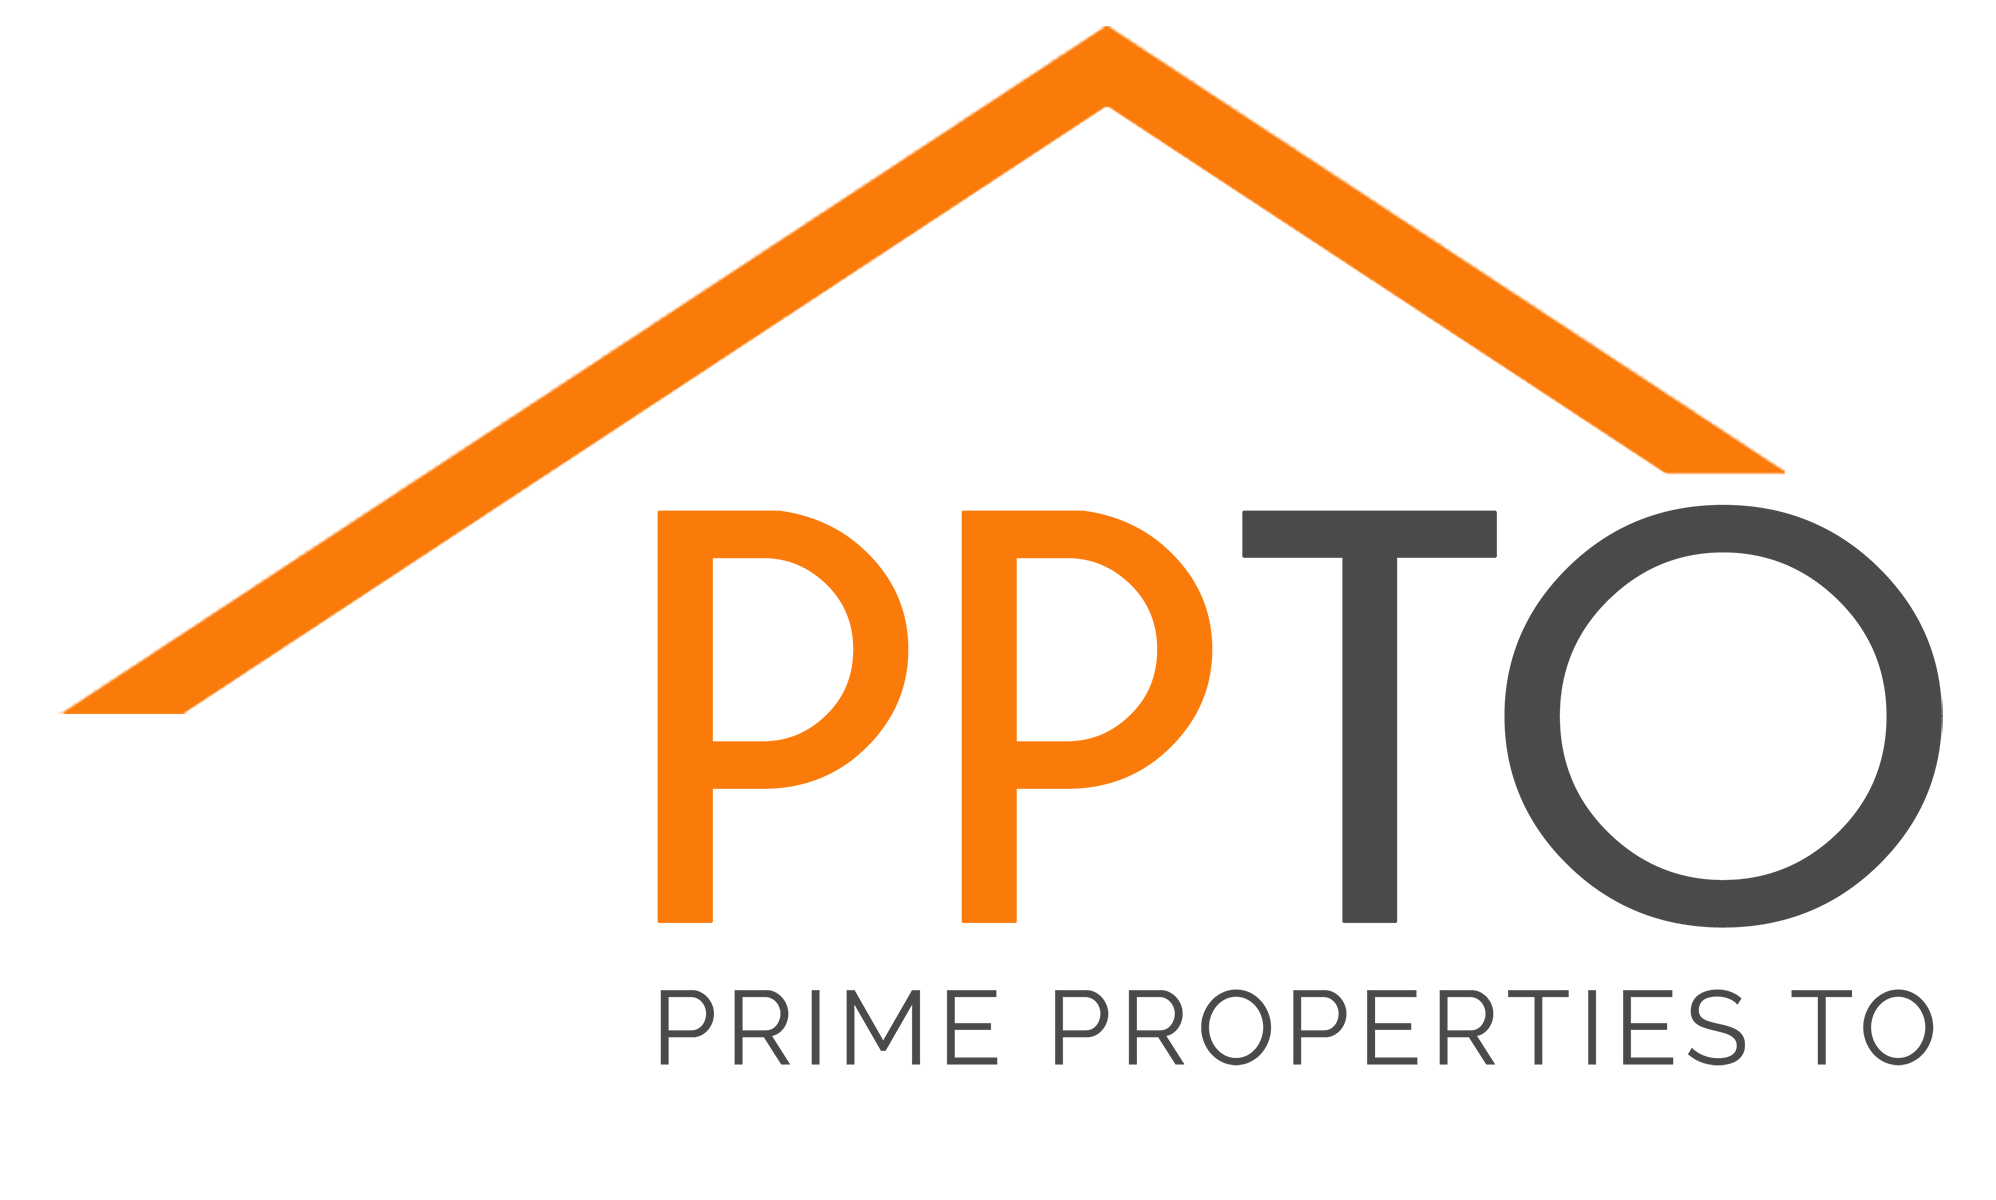 Prime Properties TO